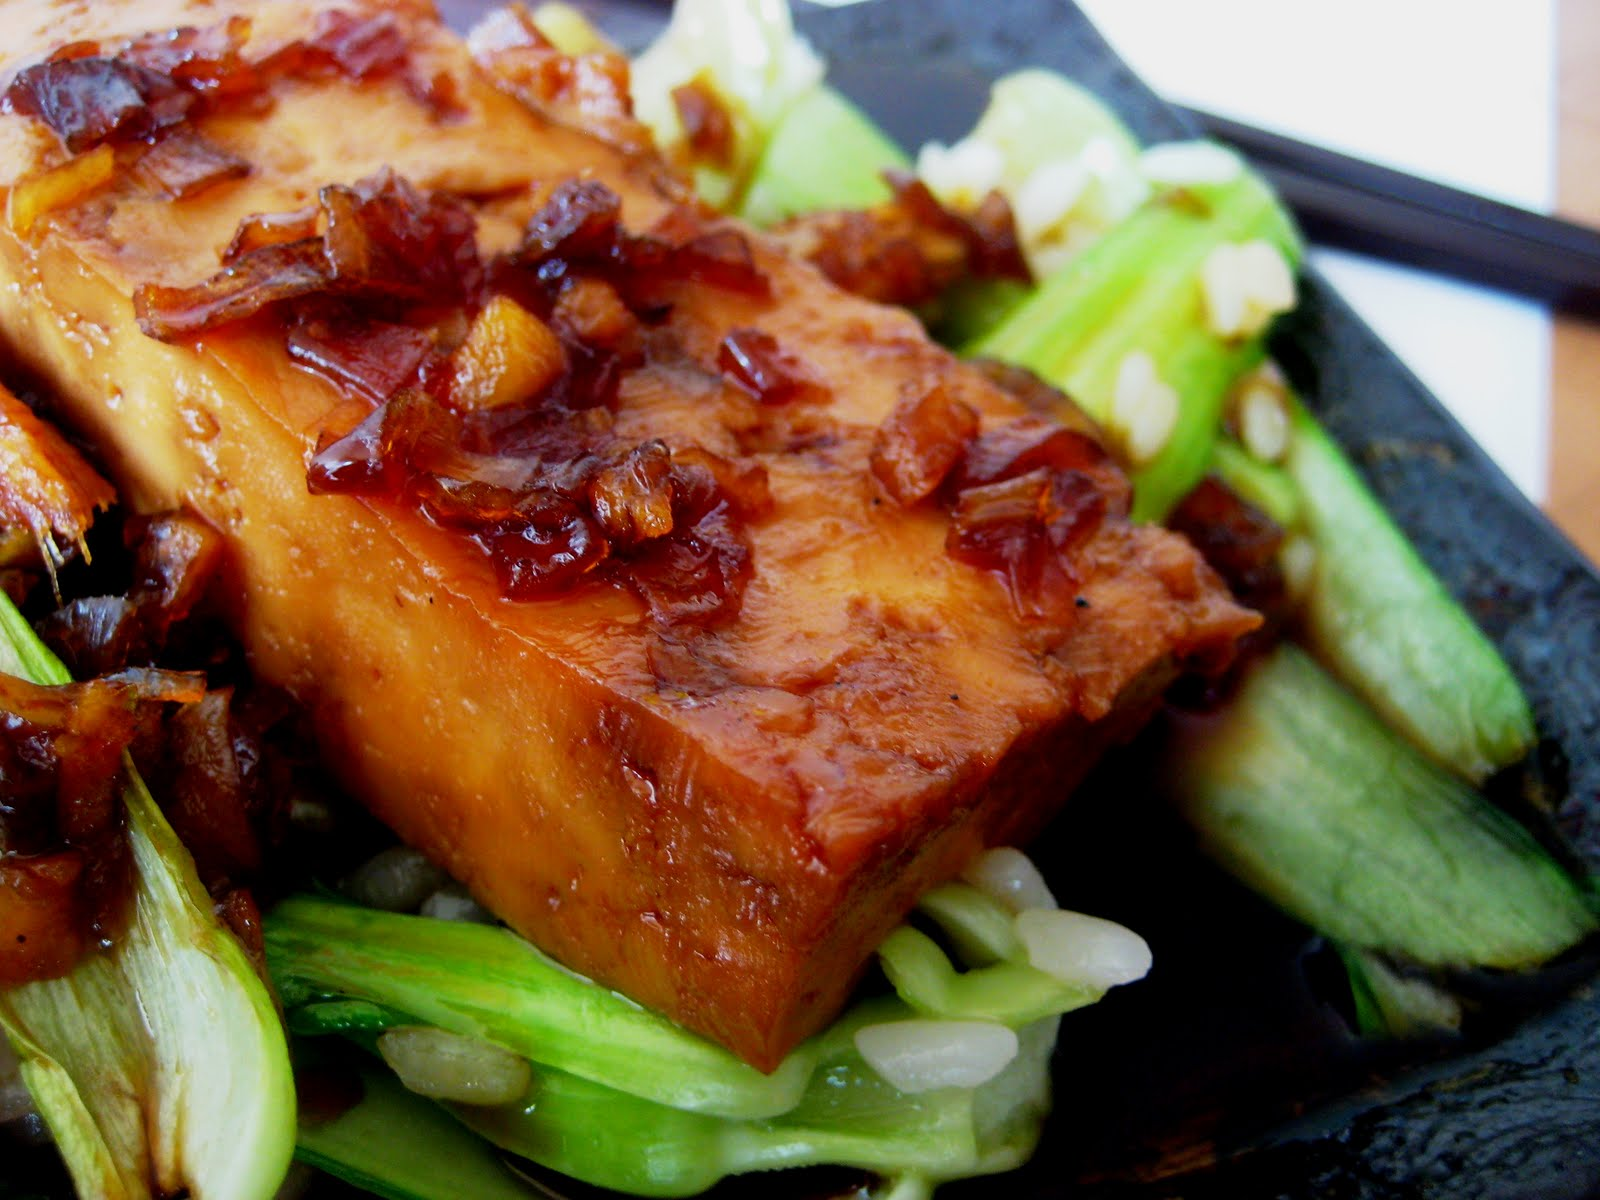 Braised Tofu in Caramel Sauce - Regional Recipes: Vietnam | Joanne ...